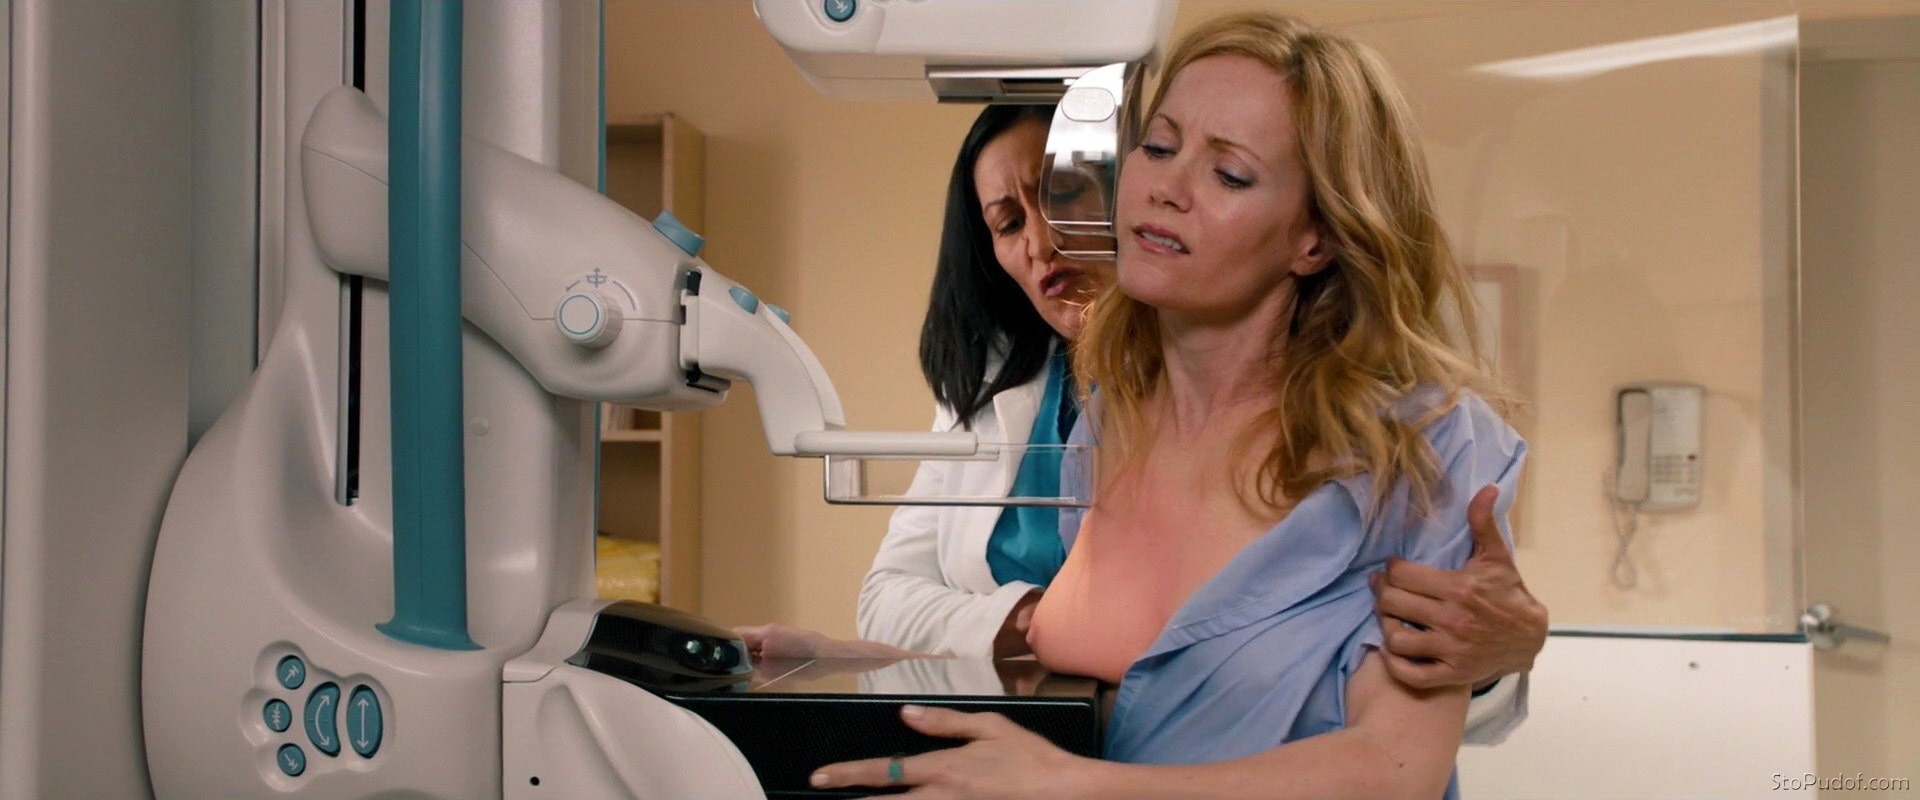 the nude pics of Leslie Mann - UkPhotoSafari